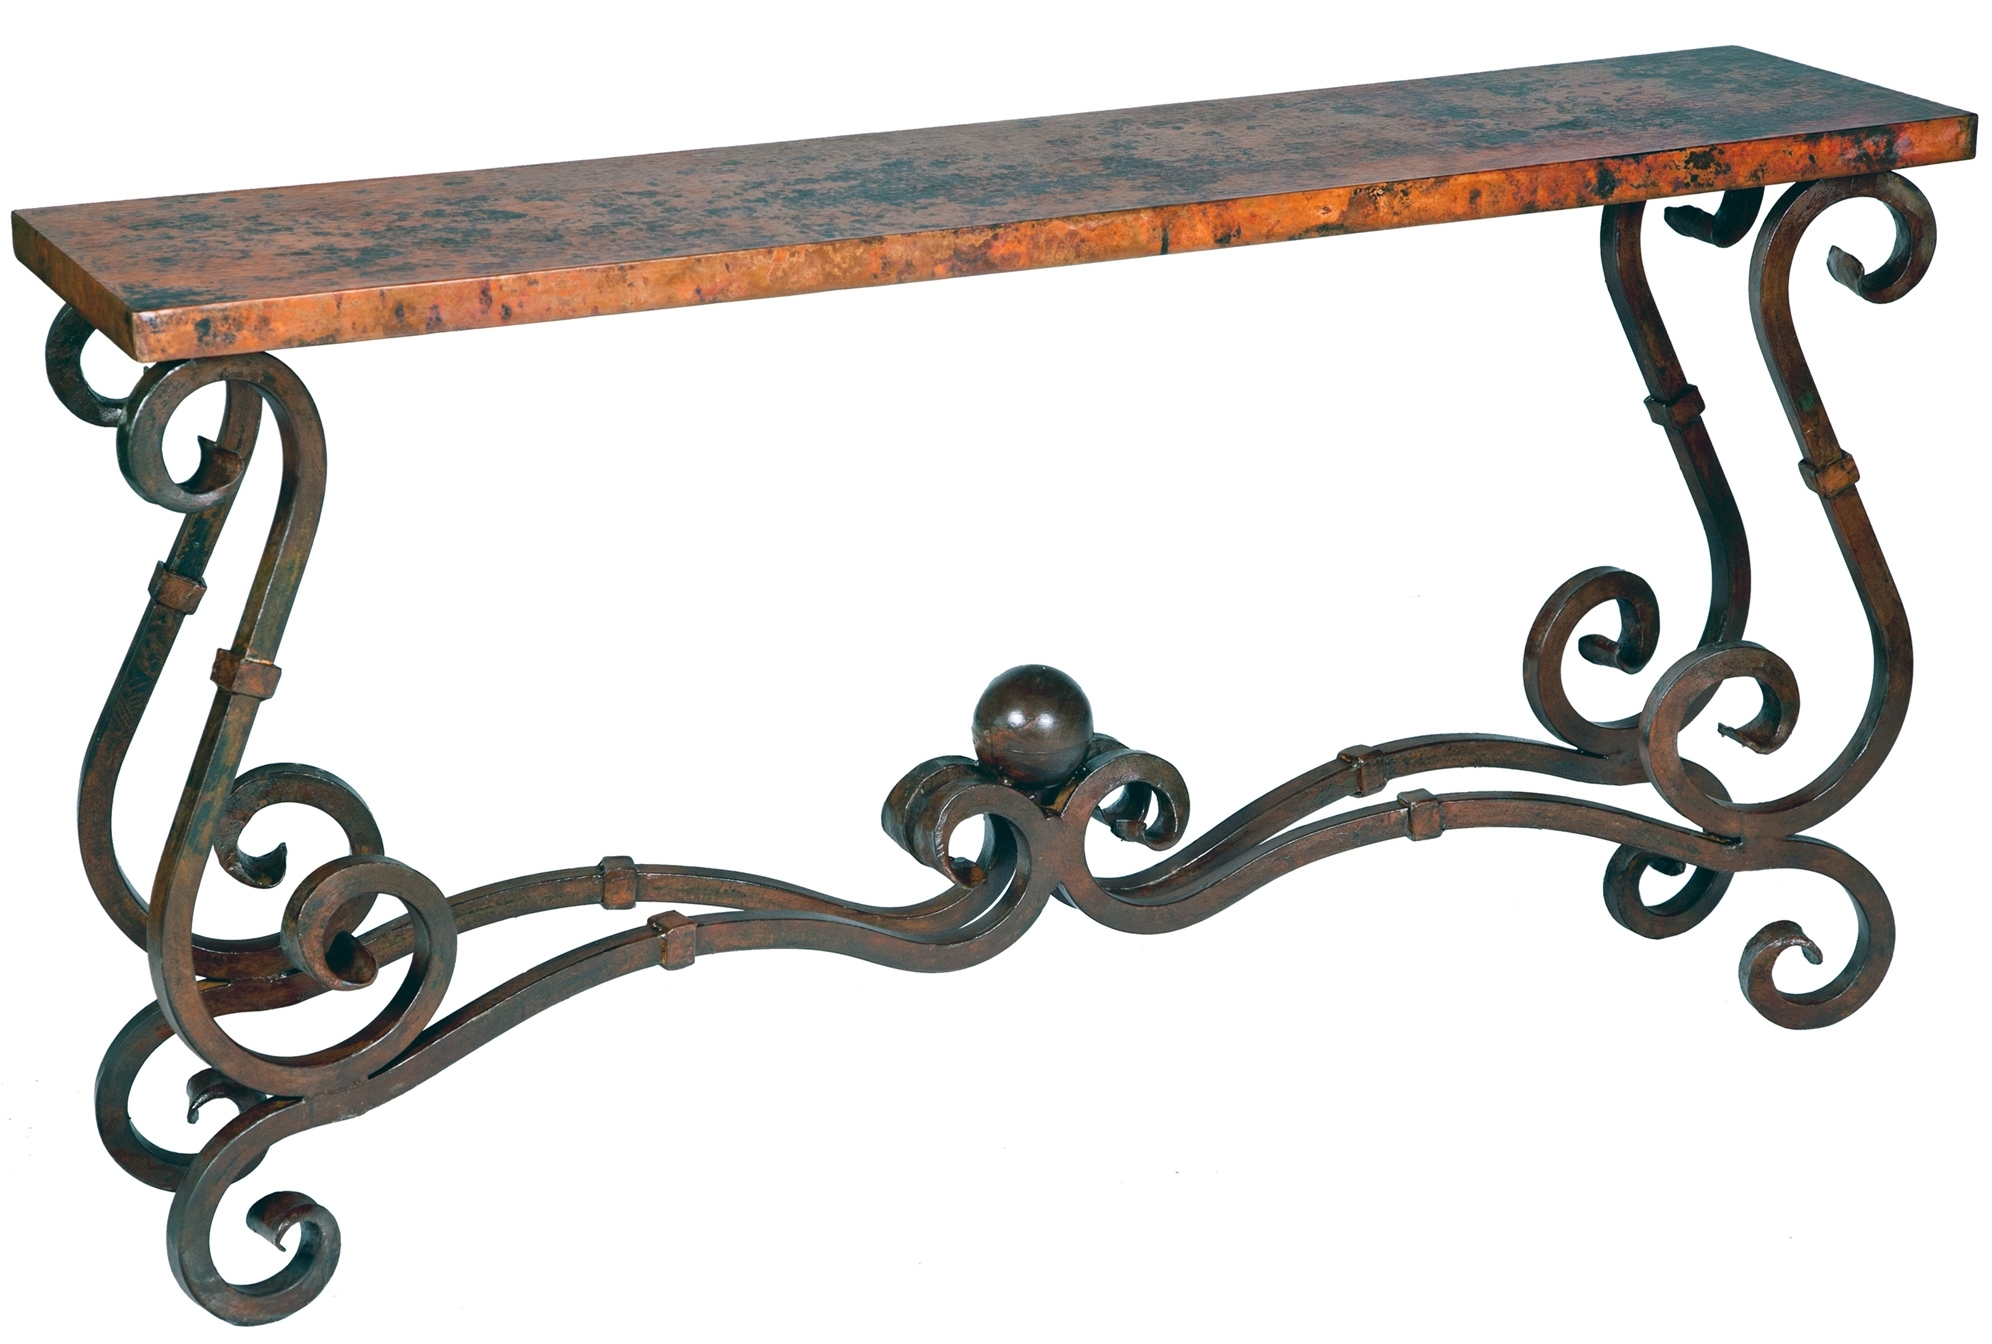 Stunning Copper amp Wrought Iron Furniture by Prima  : prima 2 from blog.timelesswroughtiron.com size 1992 x 1344 jpeg 578kB